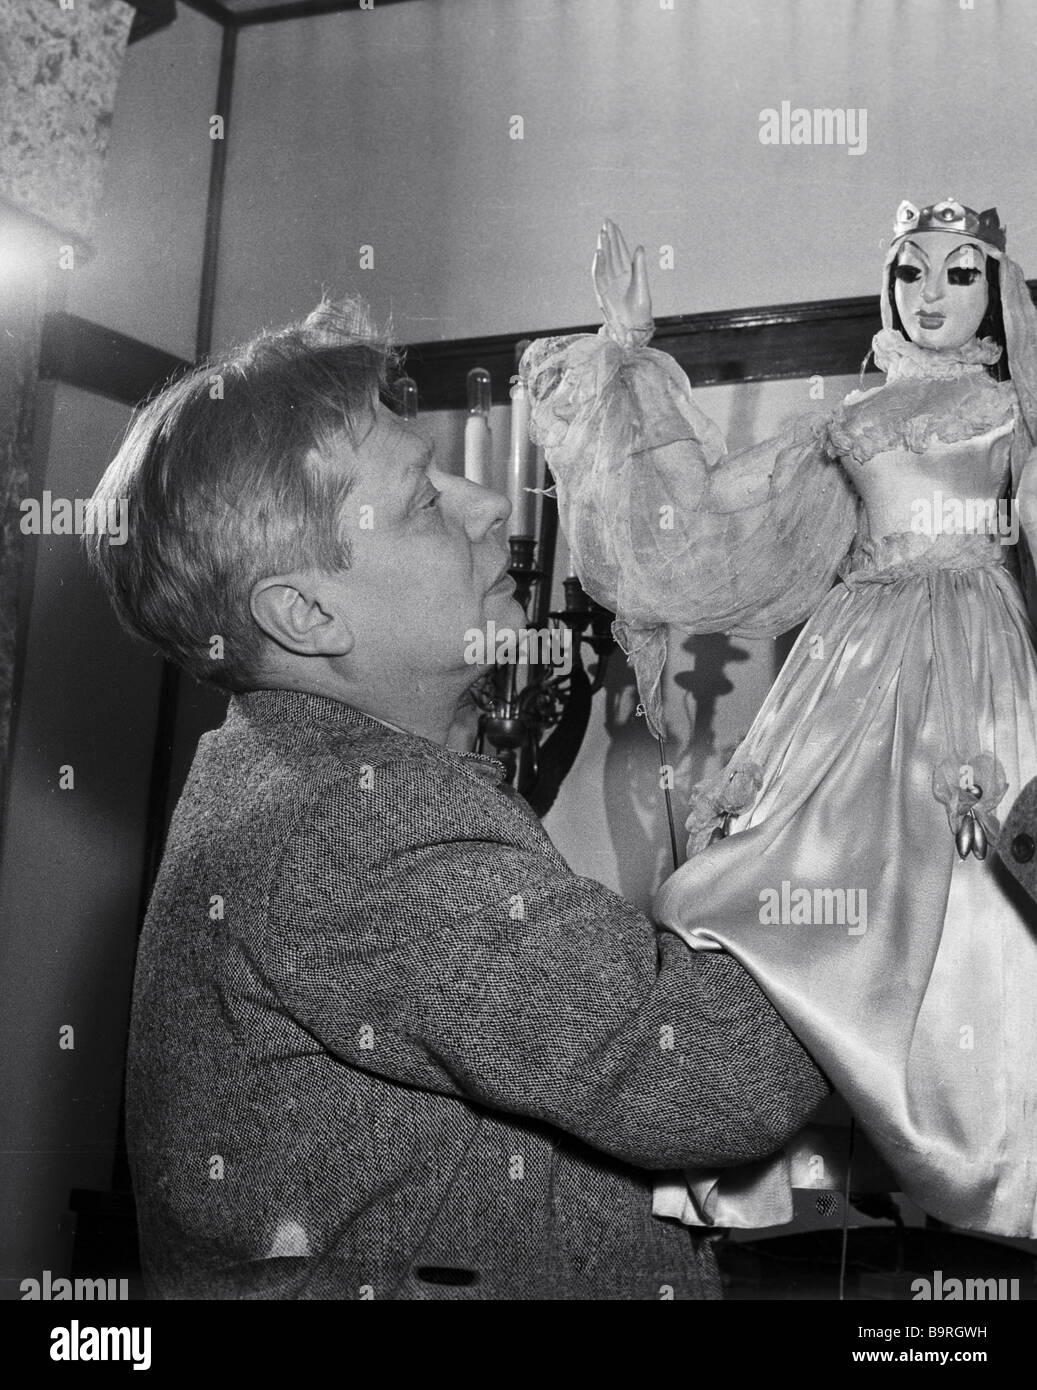 Sergei Obraztsov artistic director of the Central Puppet Theater examining a new puppet in the theater s workshop - Stock Image